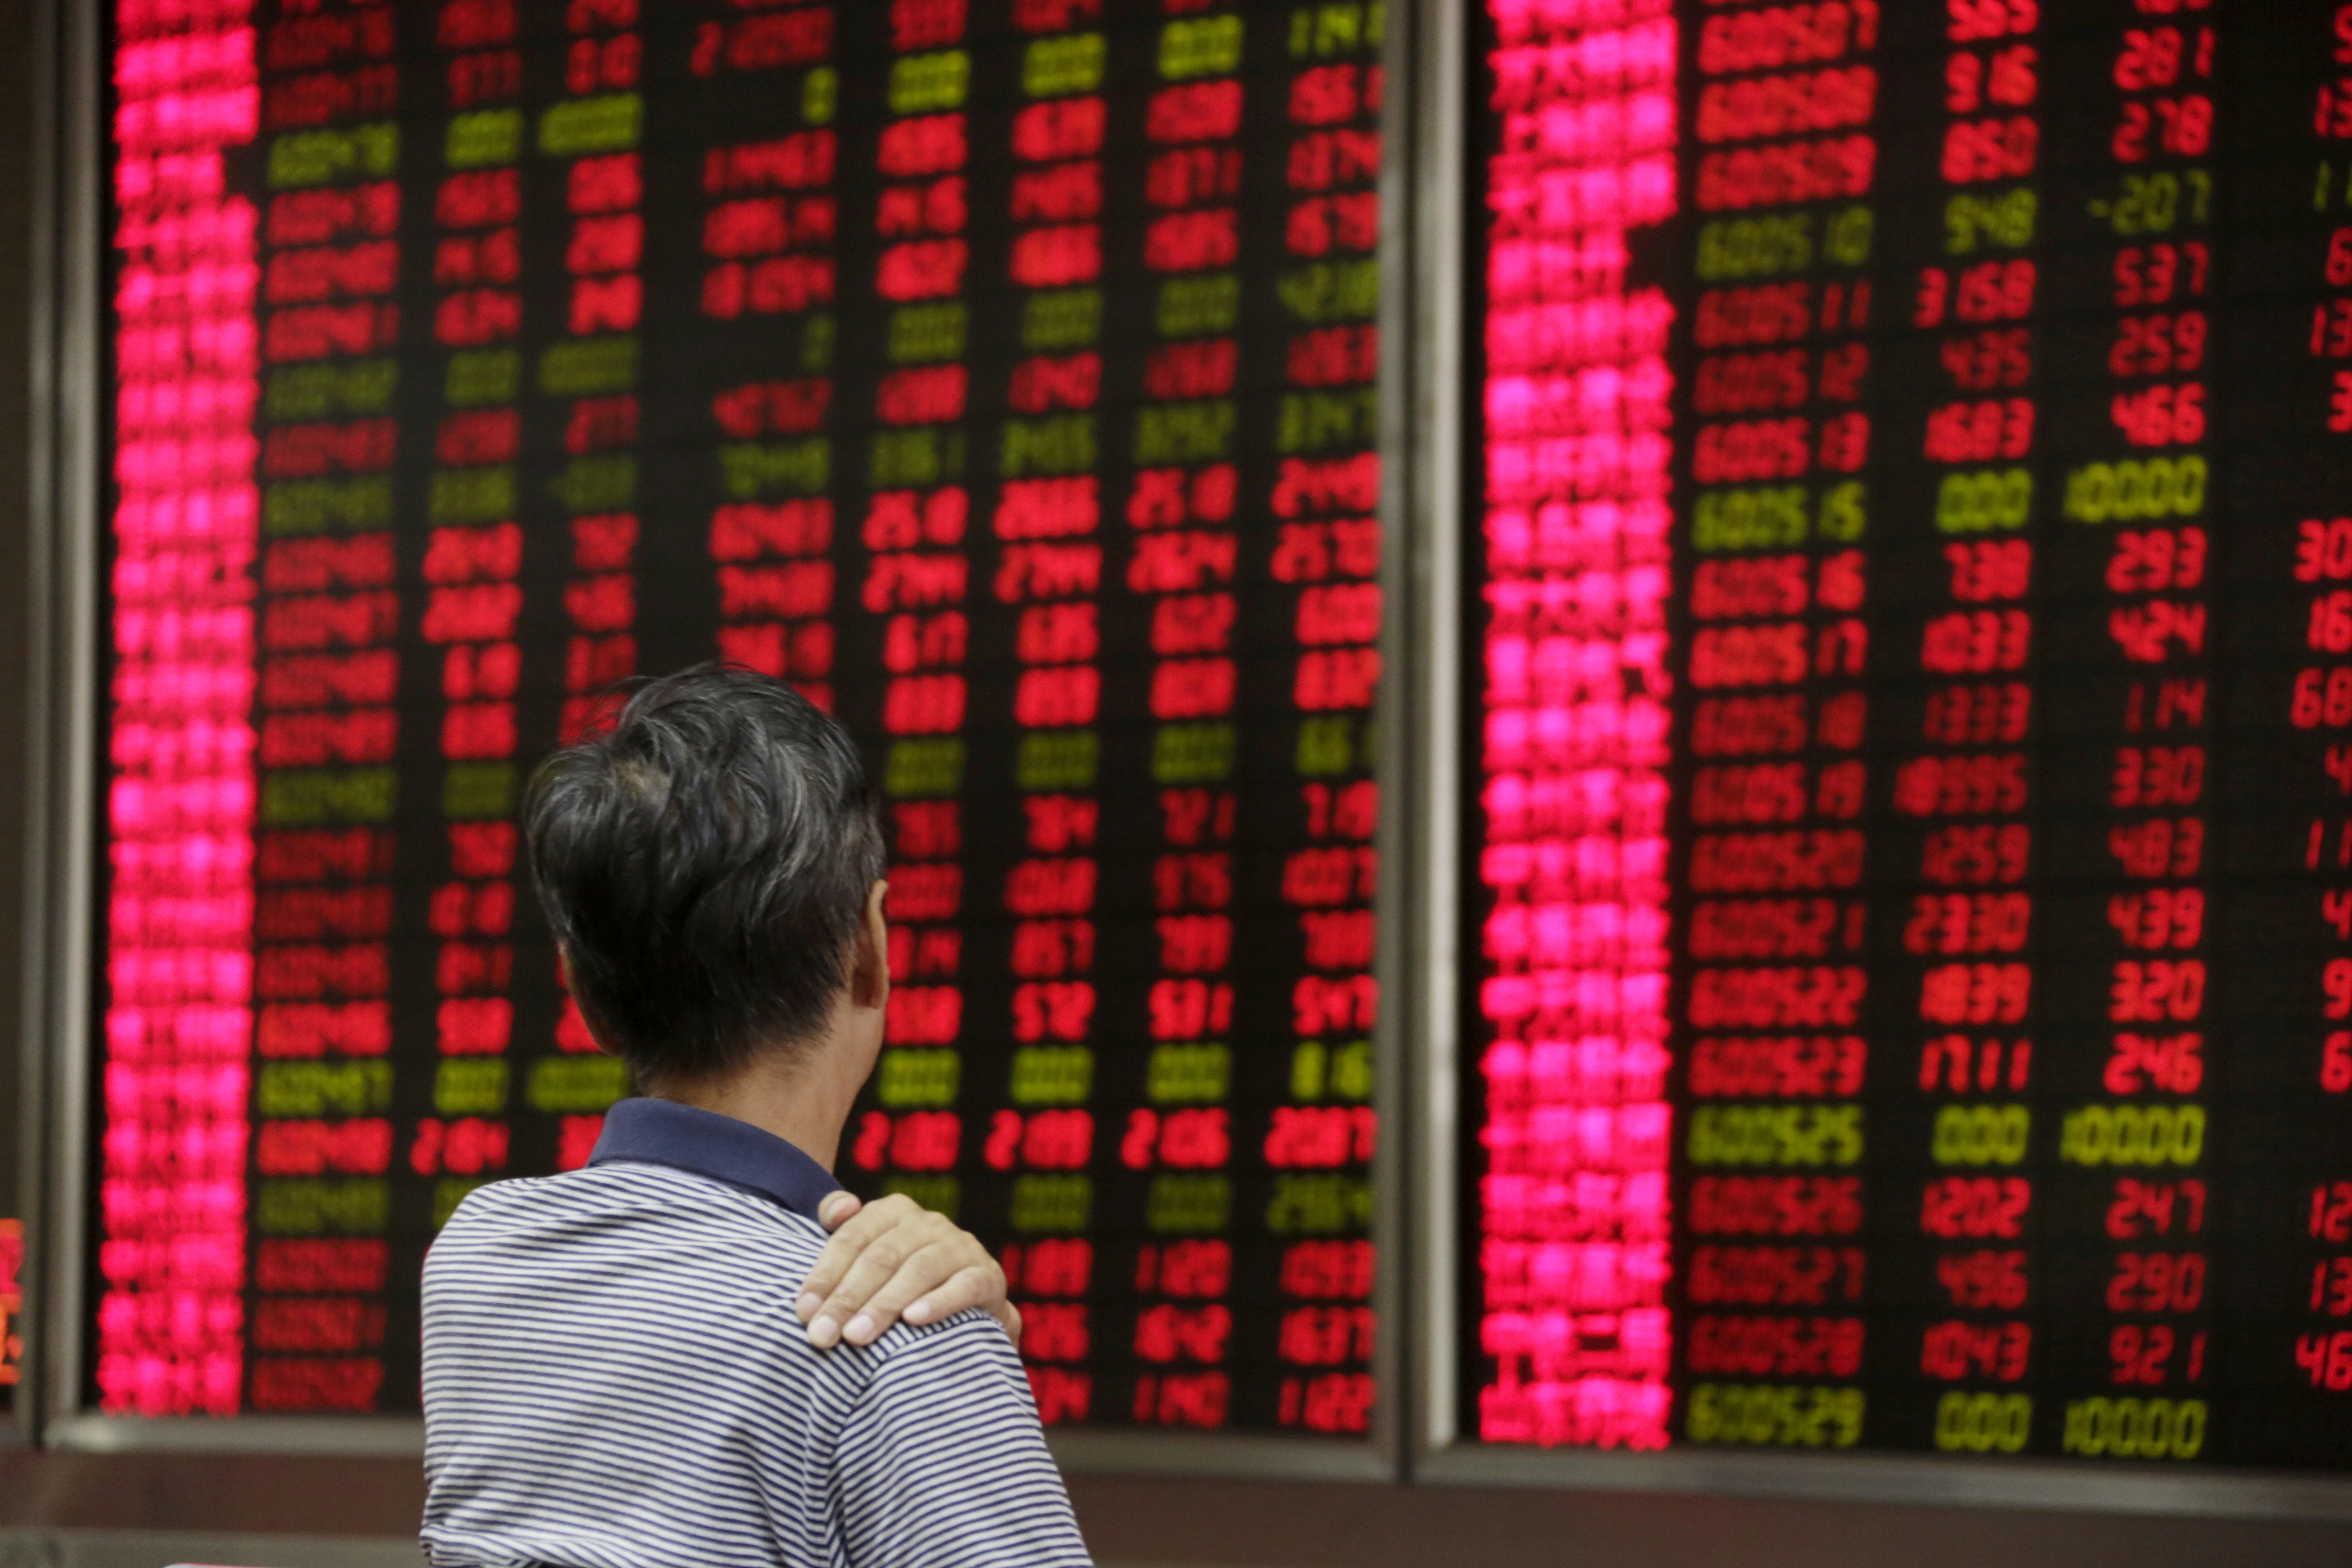 An investor looks at an electronic board showing stock information at a brokerage house in Beijing, August 27, 2015. REUTERS/Jason Lee/File Photo